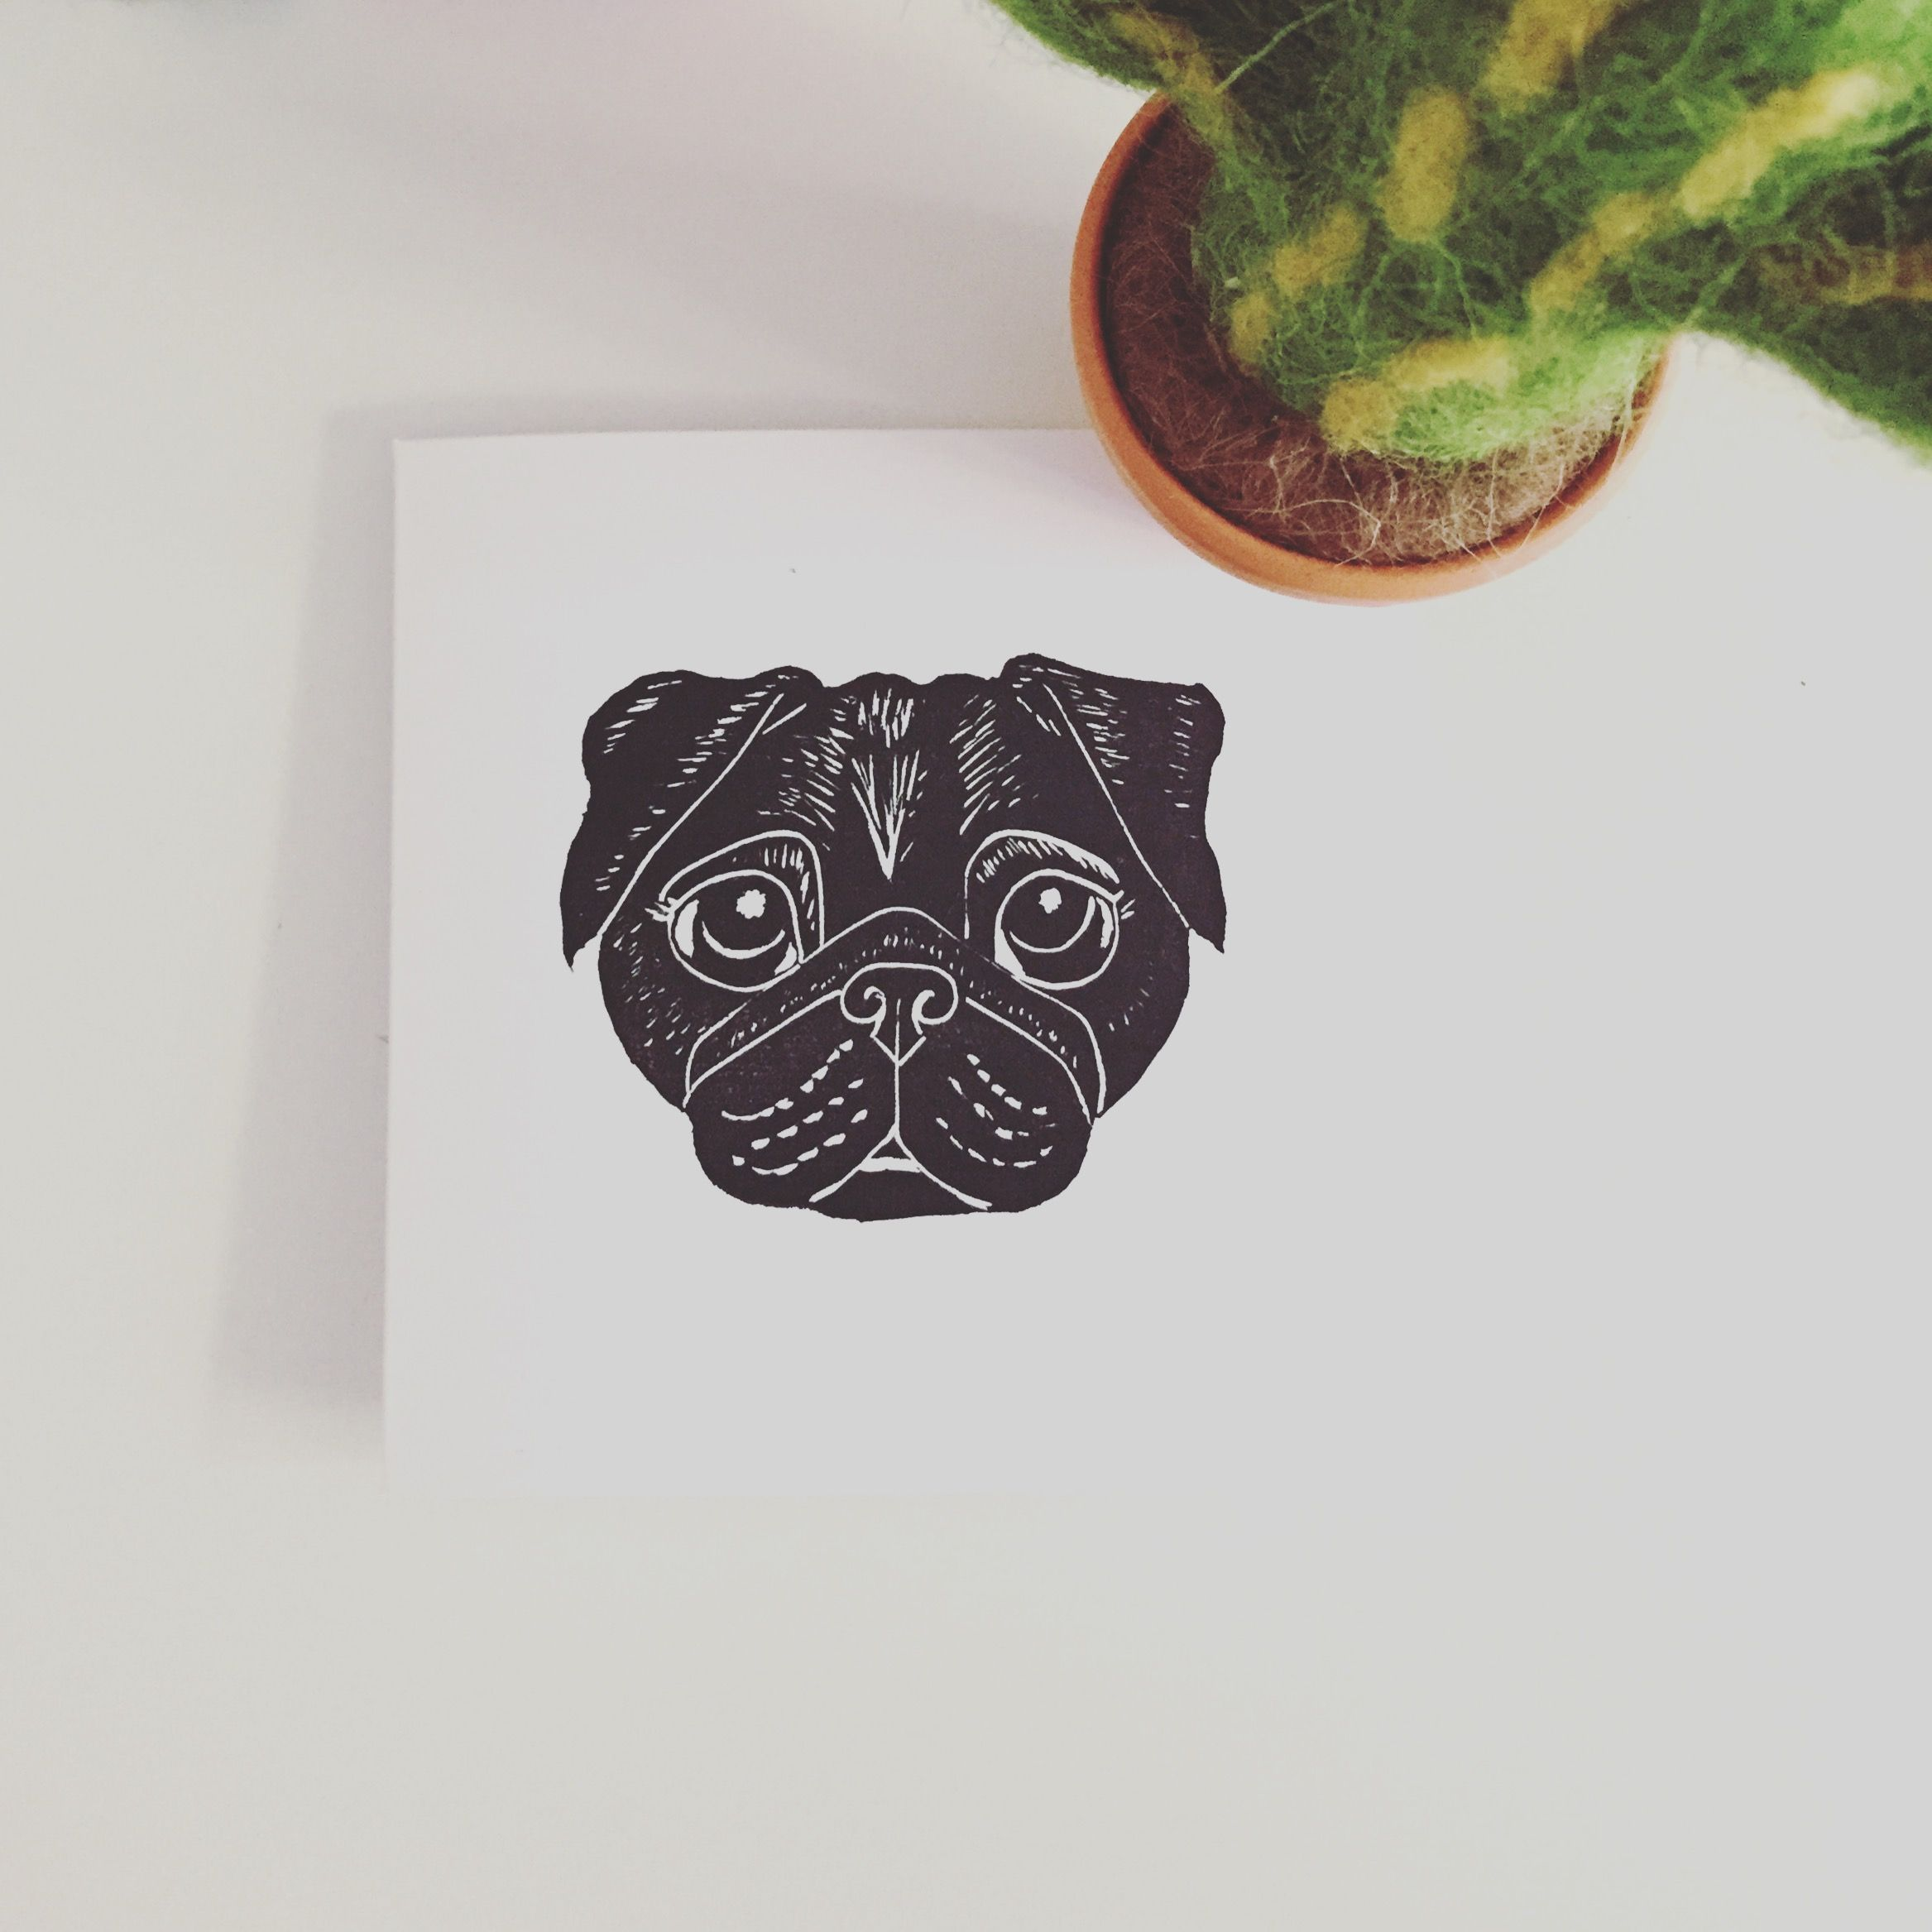 Black Pug Lino Print Greeting Card By The Black Pug Press The